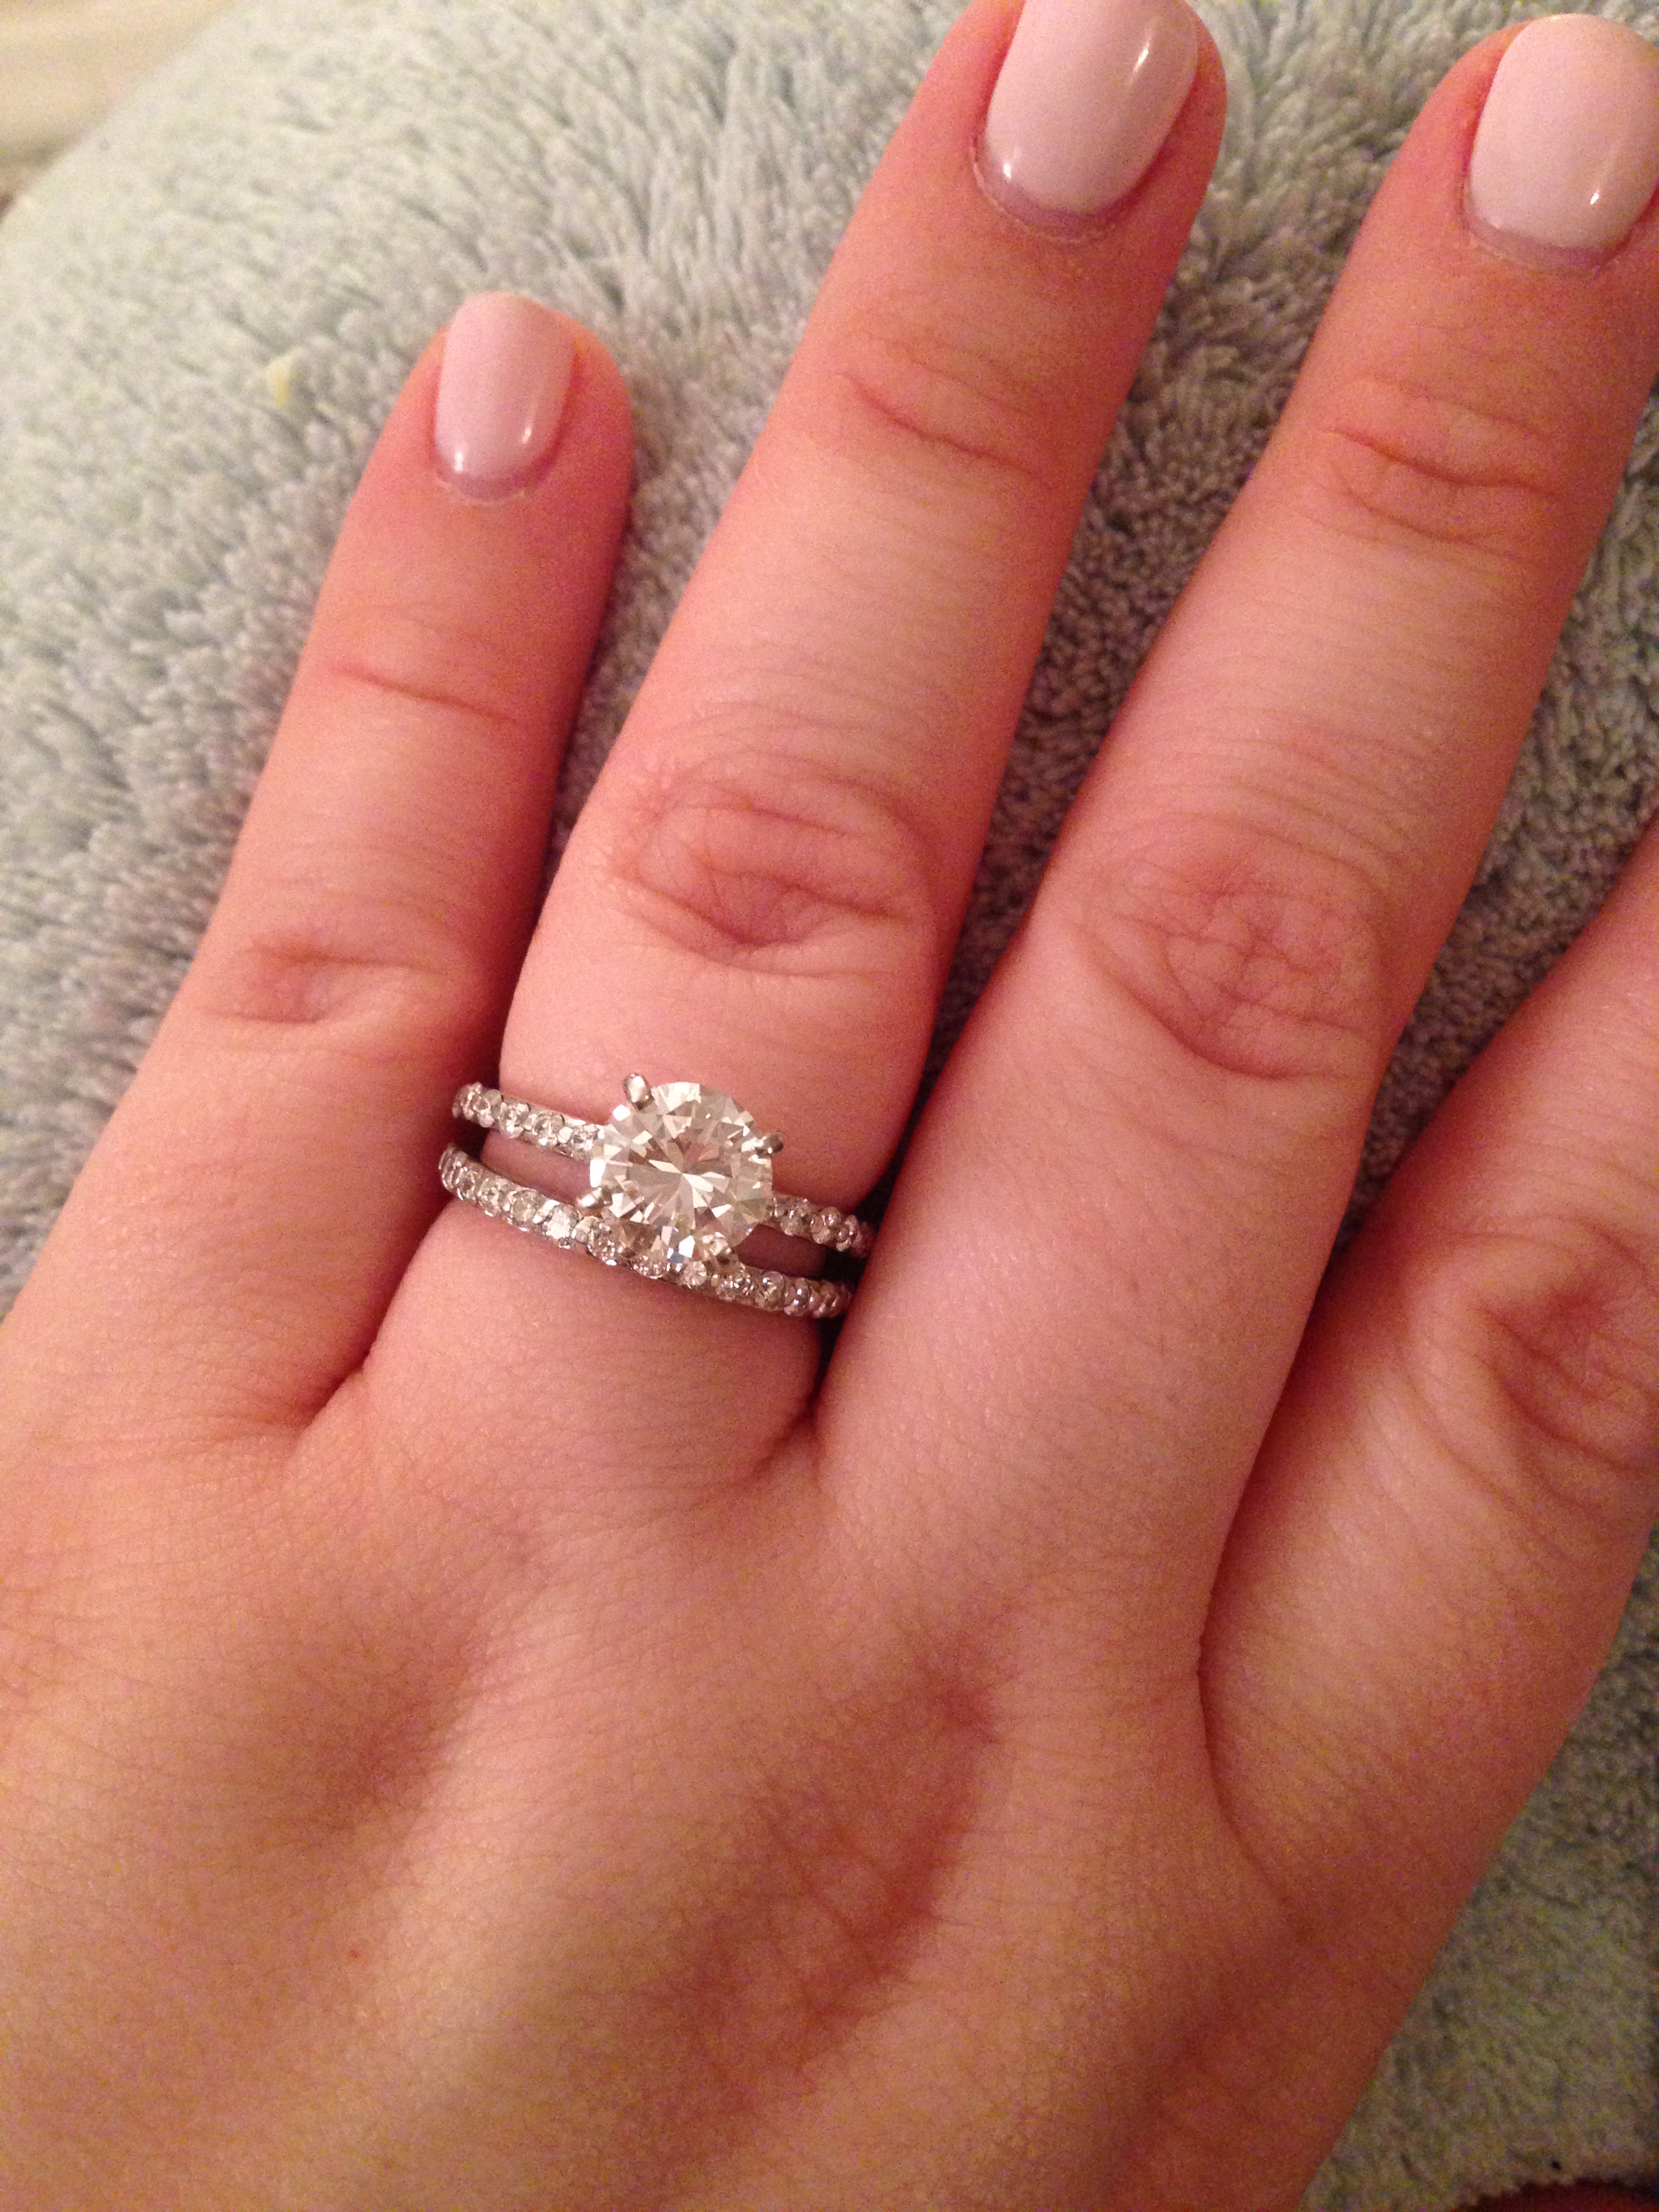 Exquisite engagement ring: Pictures of engagement and wedding rings ...